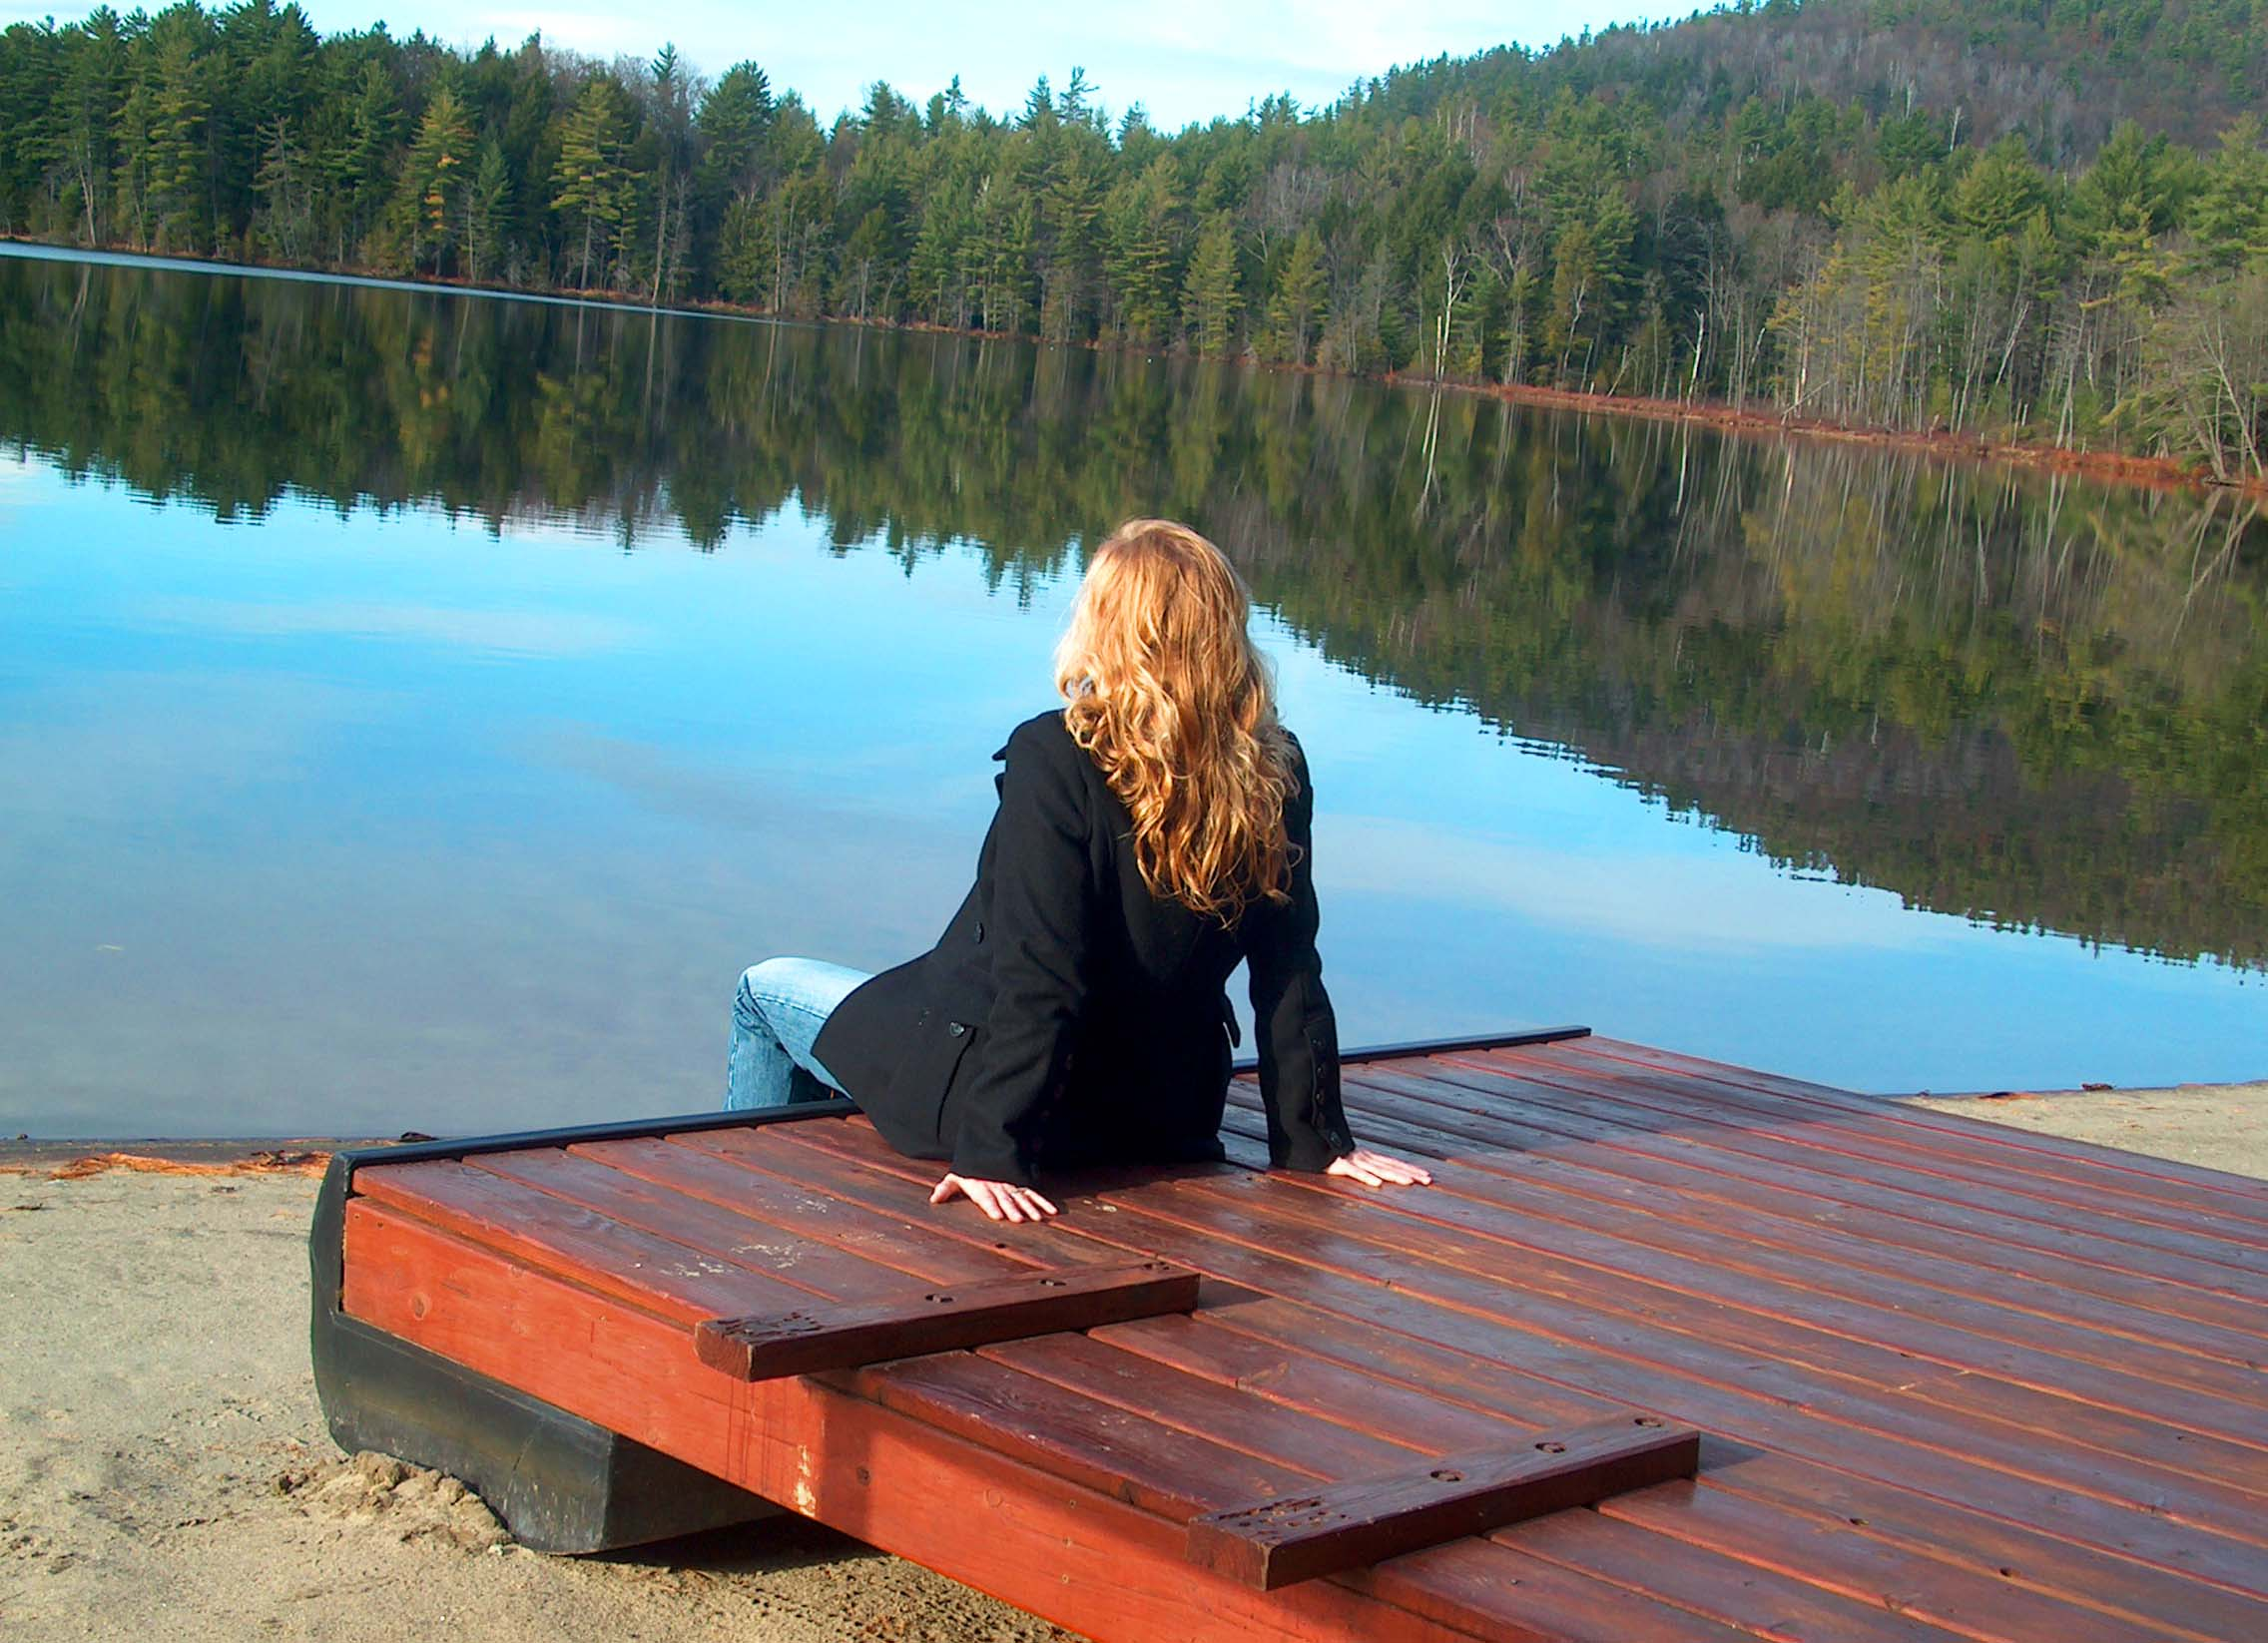 A photo of Kathy taken on her honeymoon in Lake George, New York. She is sitting next to the water and looking at the landscape.